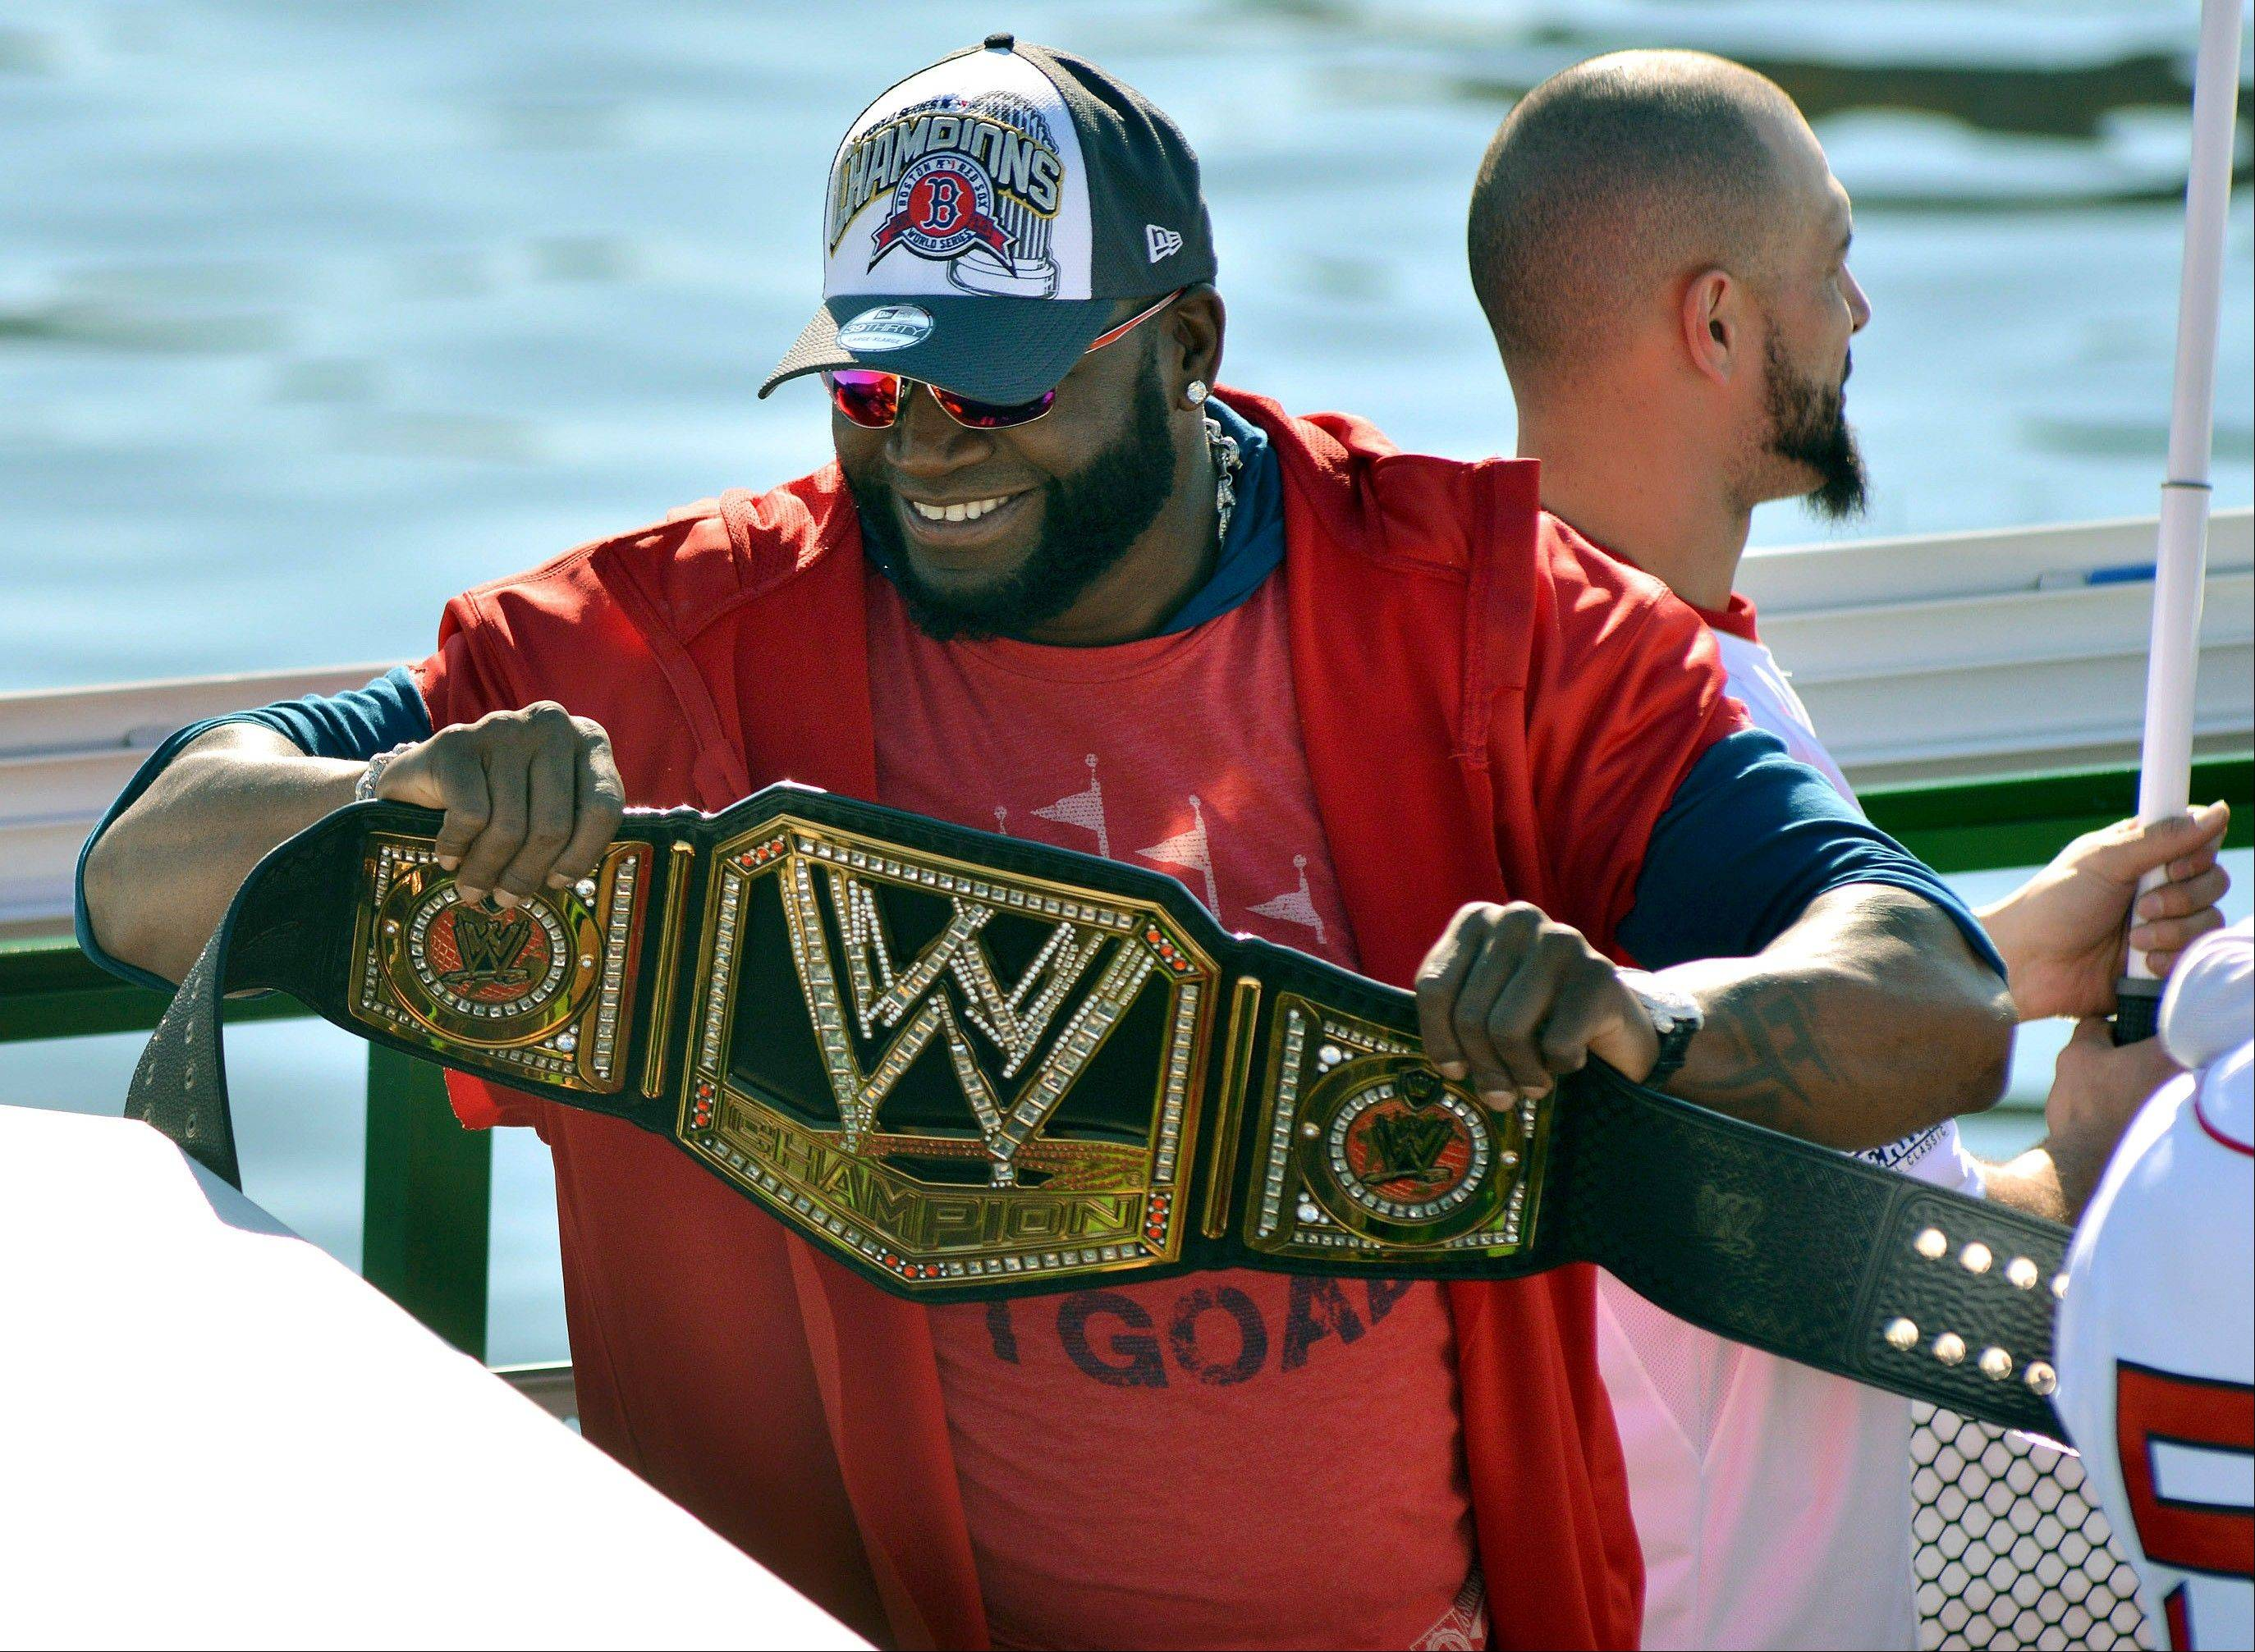 Boston Red Sox' David Ortiz holds up a championship belt as he and fellow players ride on a duck boat.rolling parade celebrating the team's World Series title.